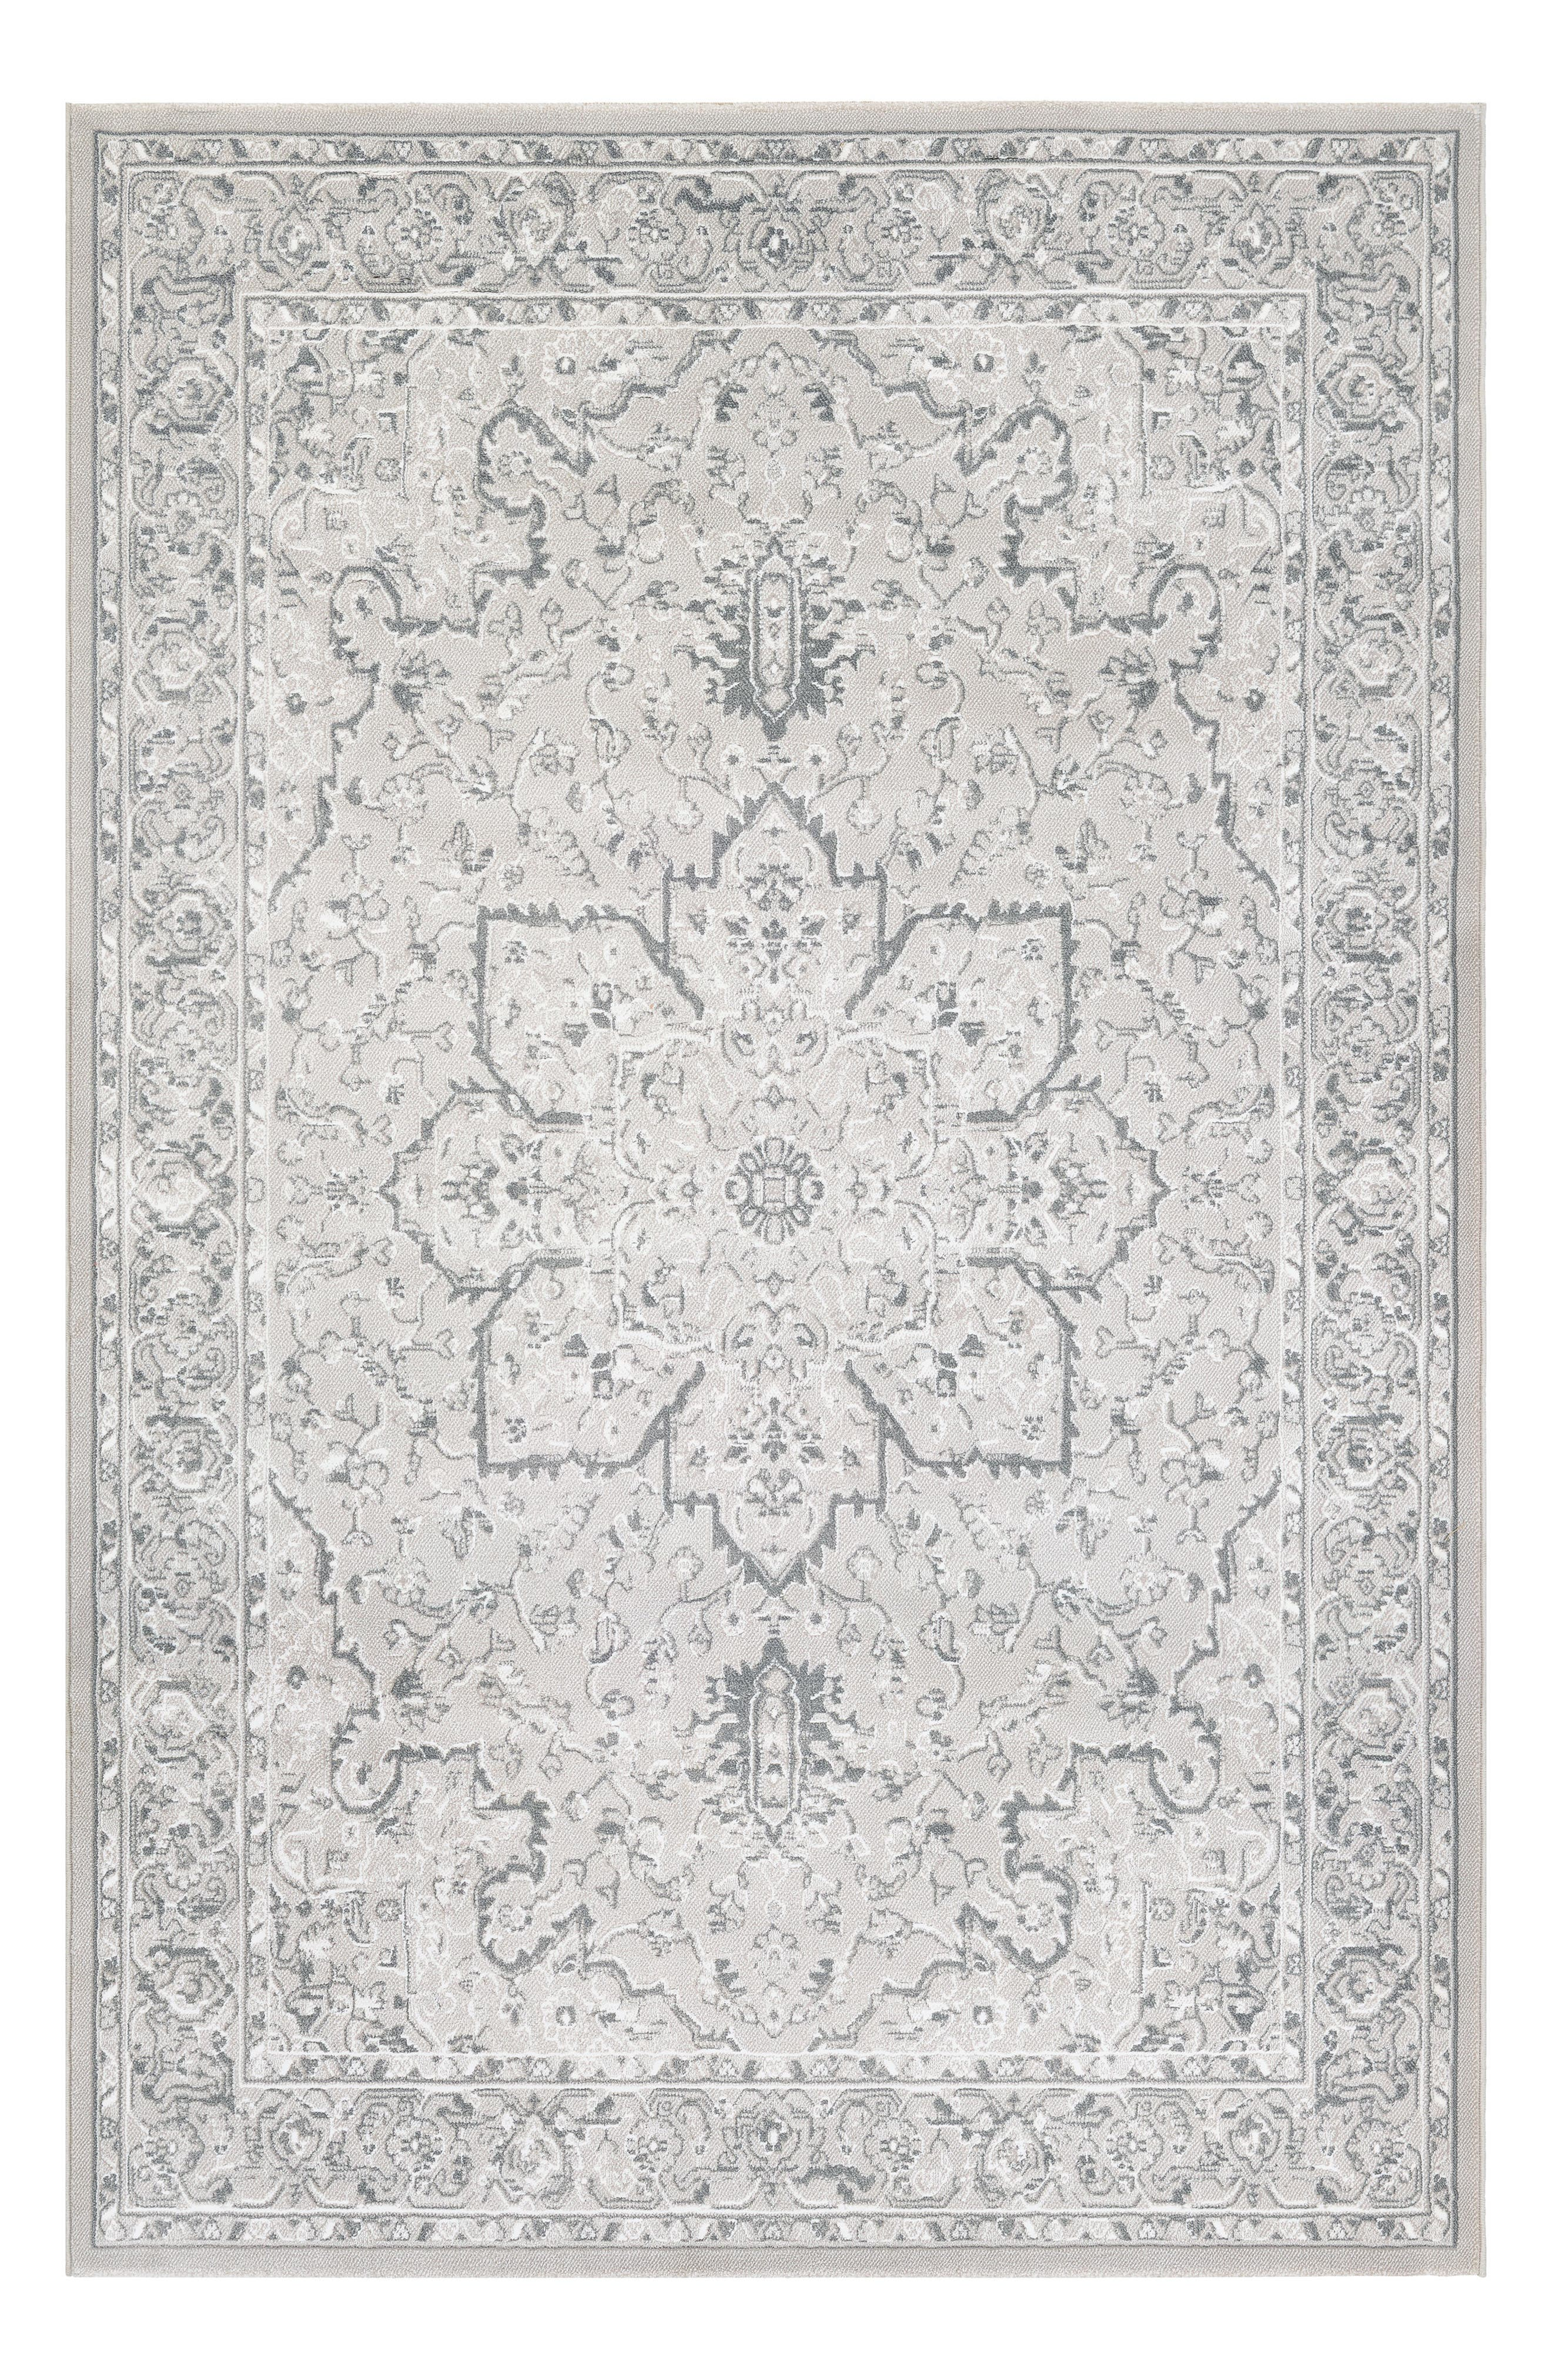 Siena Indoor/Outdoor Rug,                         Main,                         color, Pearl/ Champagne